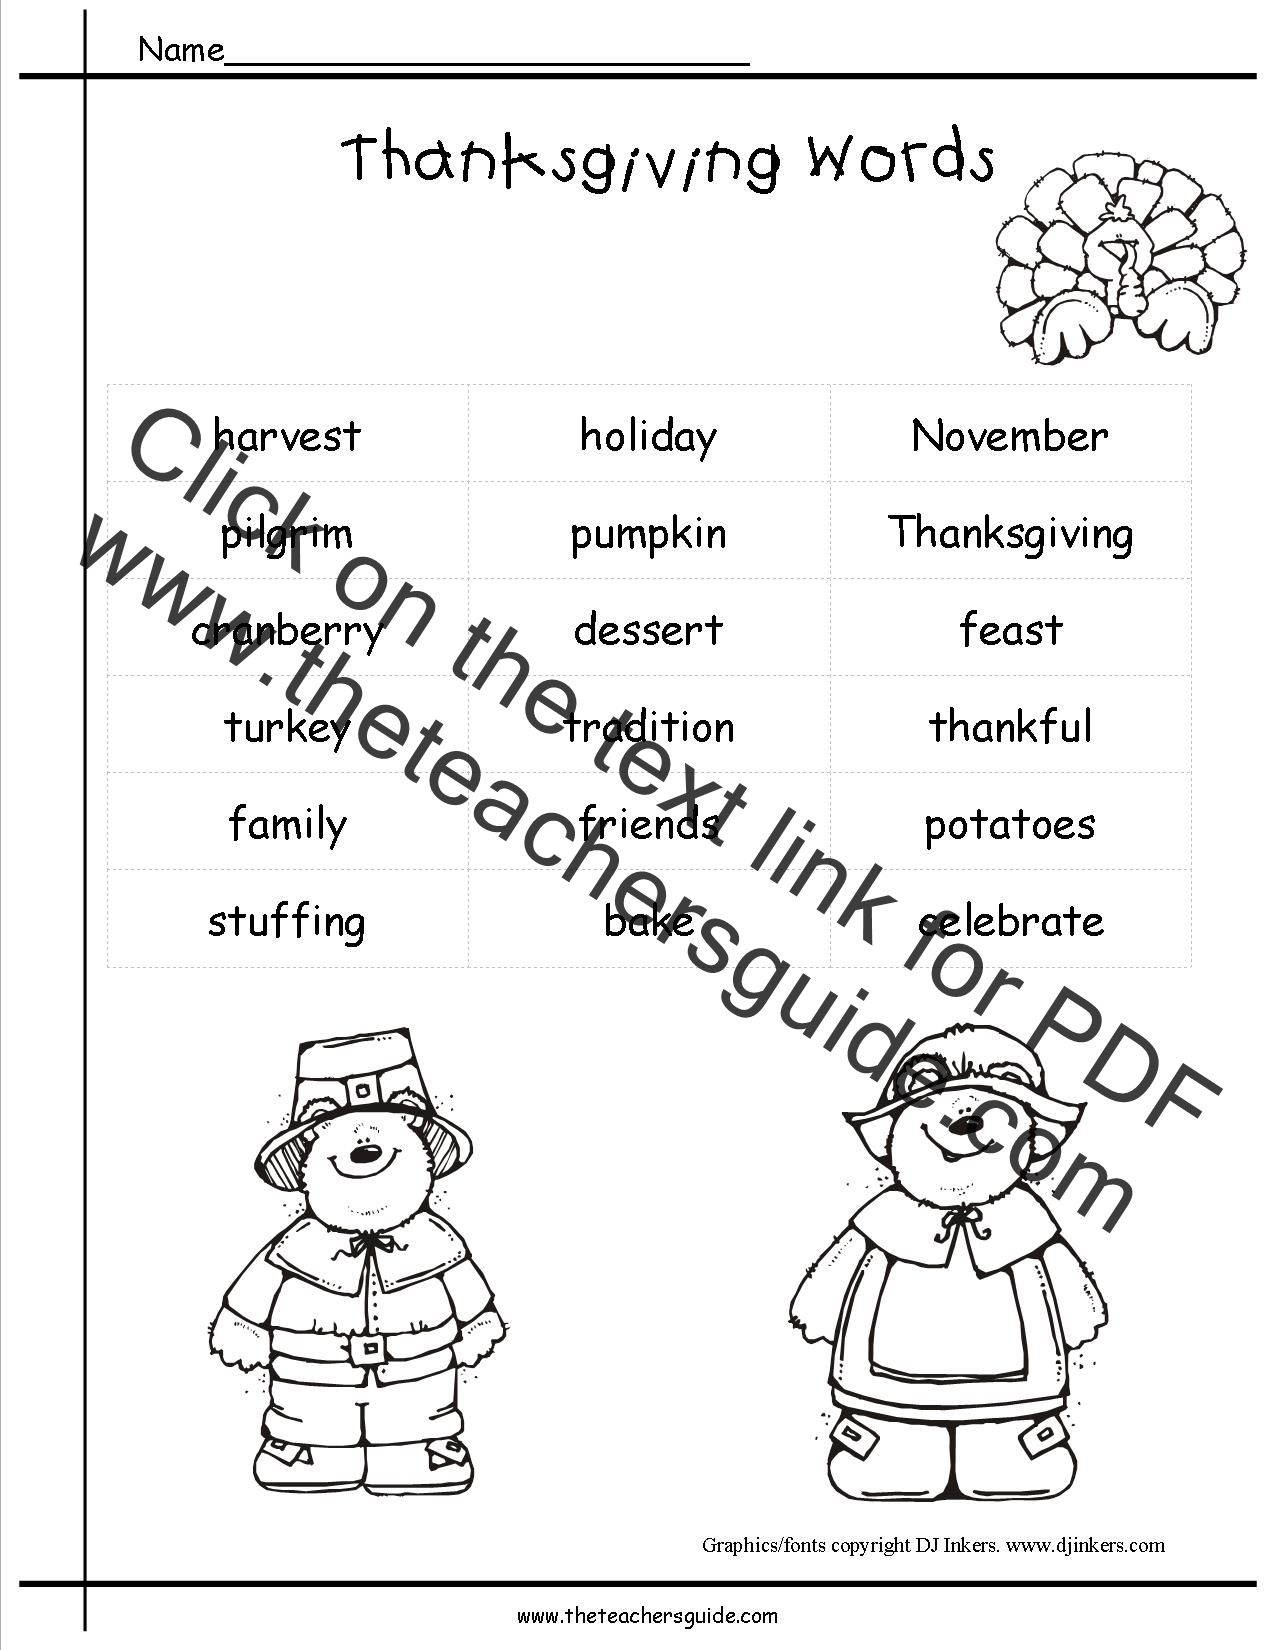 worksheet Thanksgiving Worksheets Free thanksgiving printouts and worksheets word list